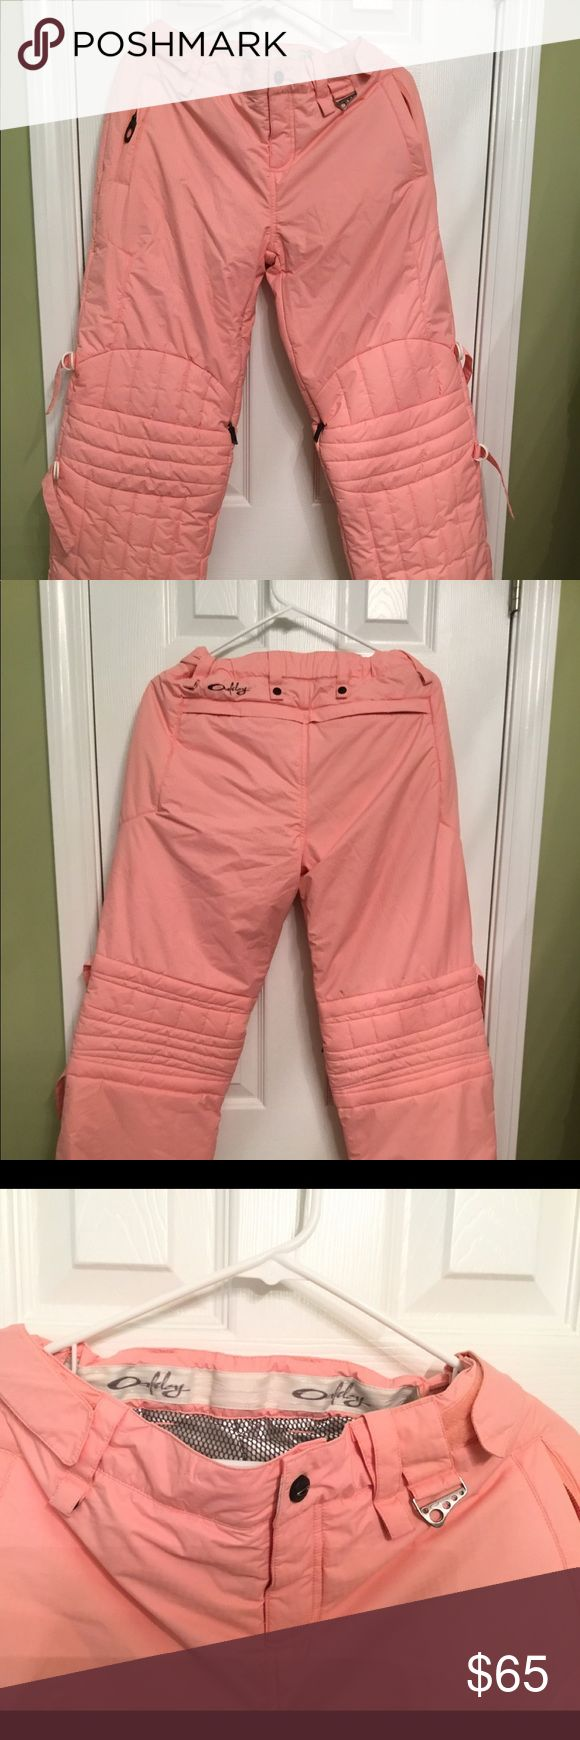 """Oakley Ski snowboarding Pants Nitro Fuel ,Sz small Women's small snow ski paints, Oakley Nitro Fuel 2. Pink/Peach in color. Like new with the exception of one minor grey spot on the back (pic taken of spot). The waist is adjustable, it has Velcro and also belt loops if needed. The waist can be tightened to about 9"""" or loosened to about 15"""" measuring across. Zipper hand pockets on top of each leg to hold money, etc.  Our home is smoke free, I strive for fast shipping, usually within 24 hrs of…"""